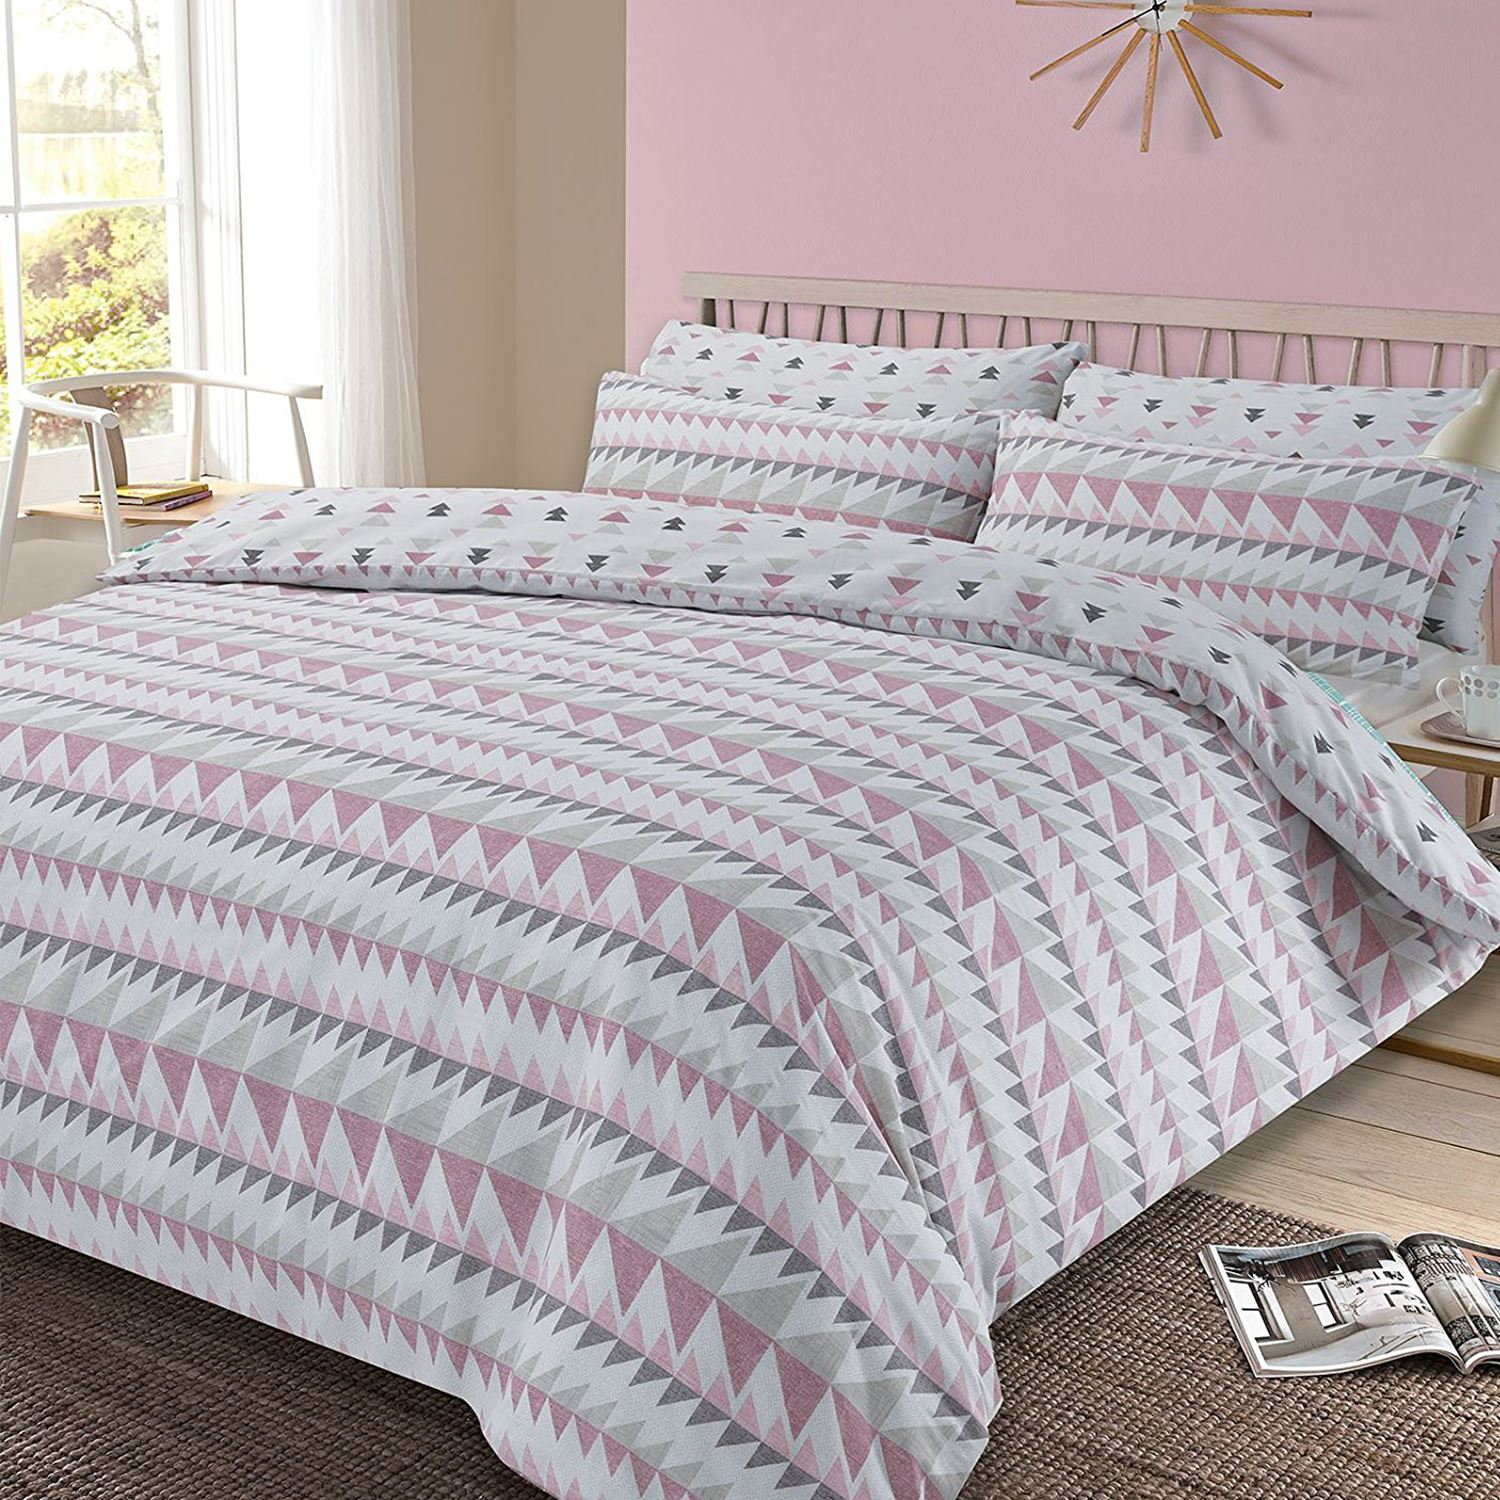 Blush Pink Quilt Cover Details About Rewind Geometric King Size Duvet Cover And Pillowcase Set Blush Pink New